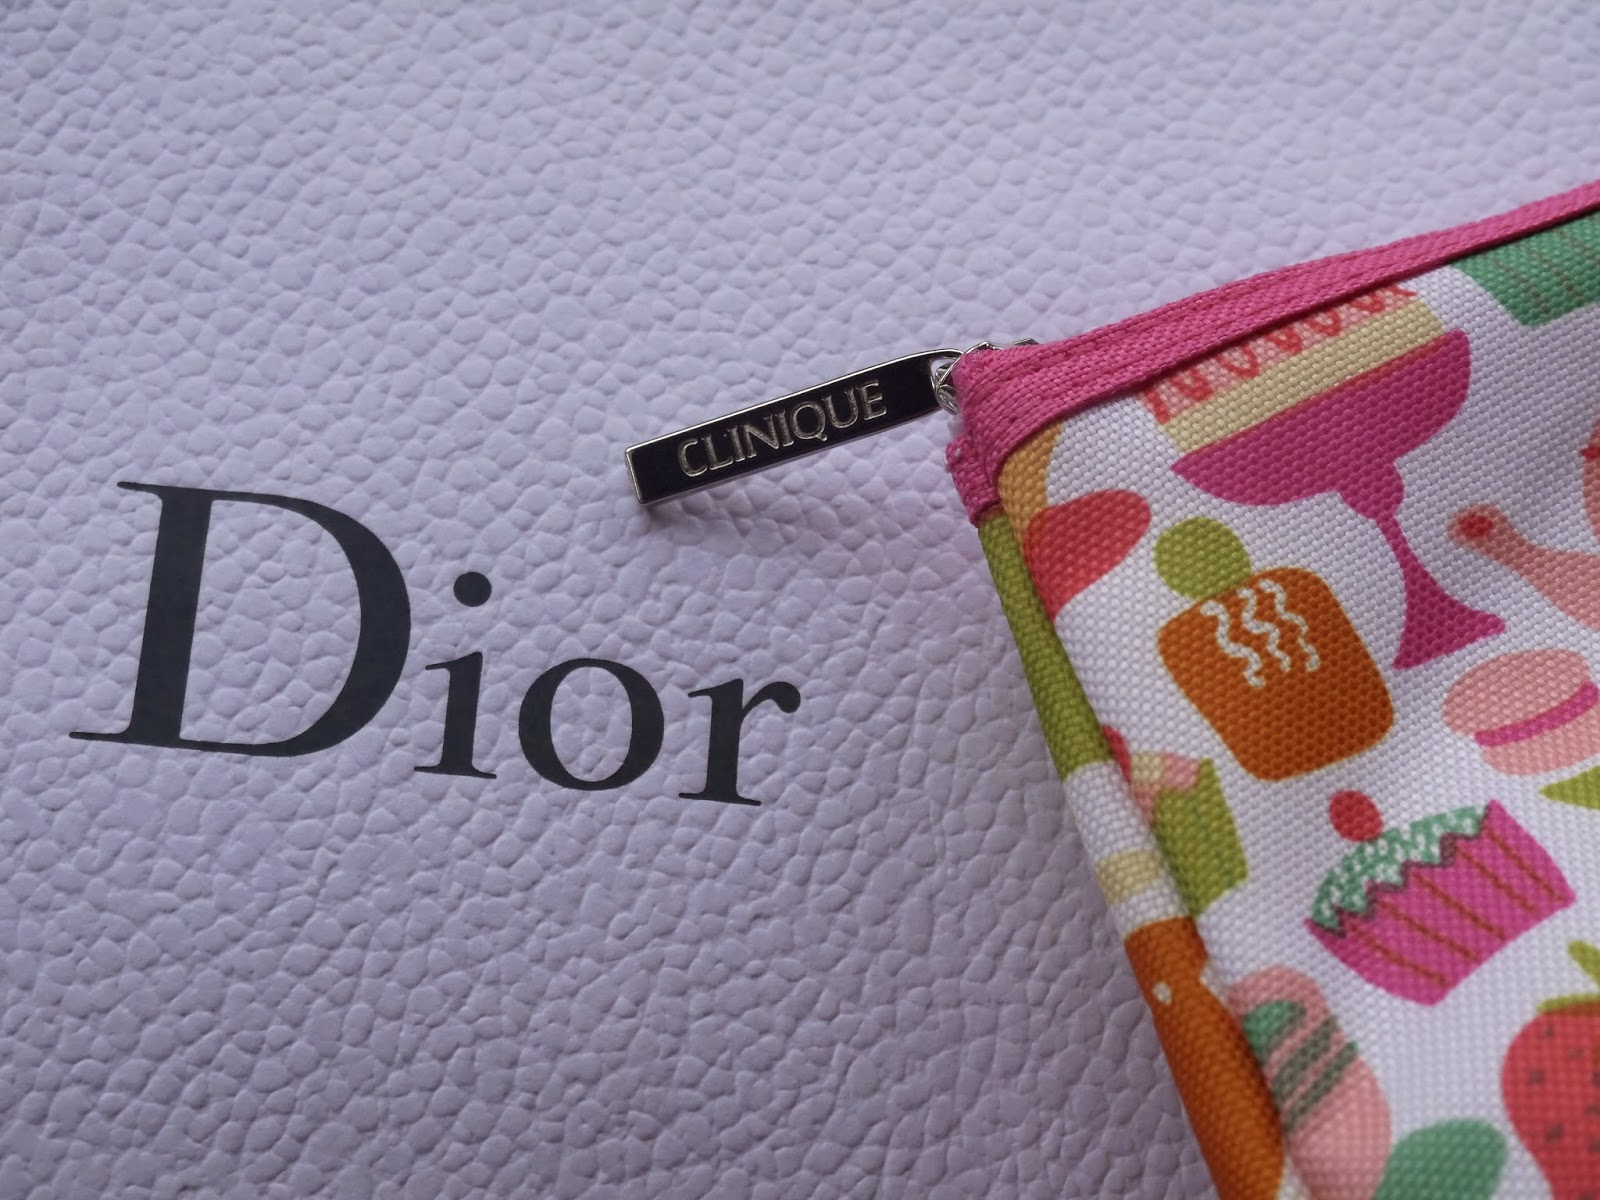 Beauty Haul: Dior and Clinique Purchases